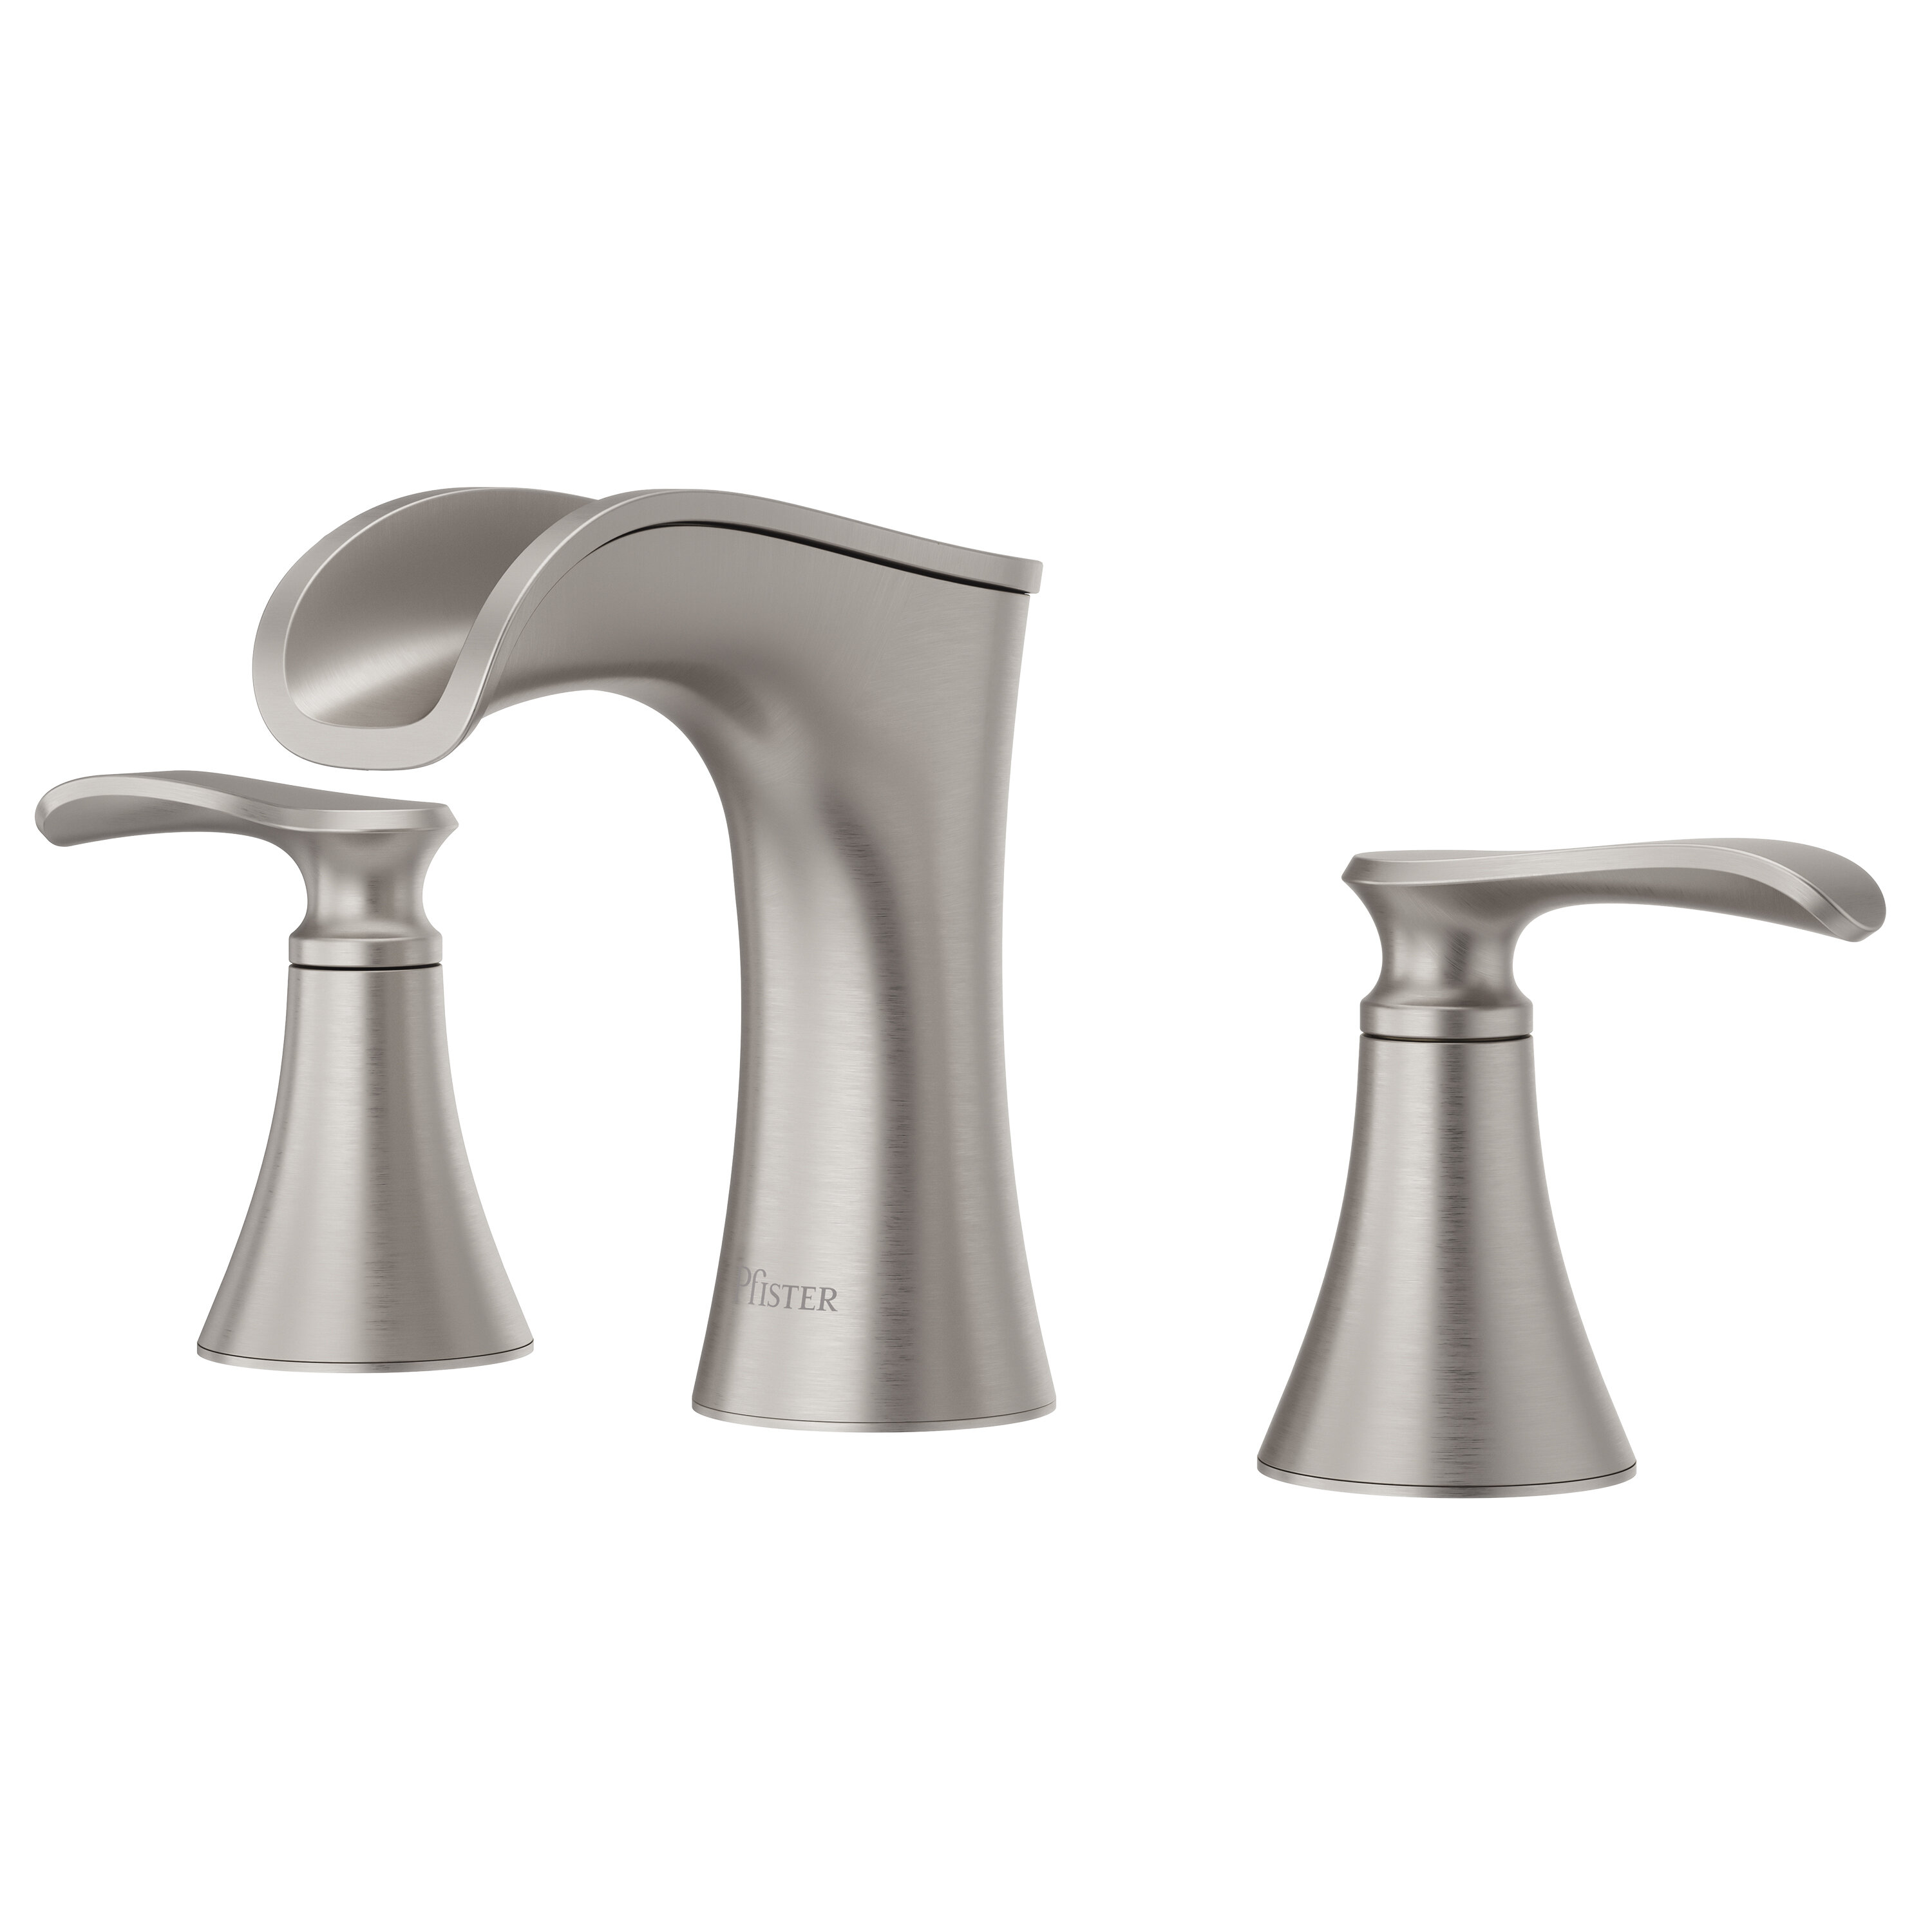 Find the Perfect Waterfall Spout Bathroom Sink Faucets | Wayfair Style Waterfall Faucet Modern Bathroom Design on tile bathroom modern, wall mount bathroom faucet modern, waterfall countertops modern,